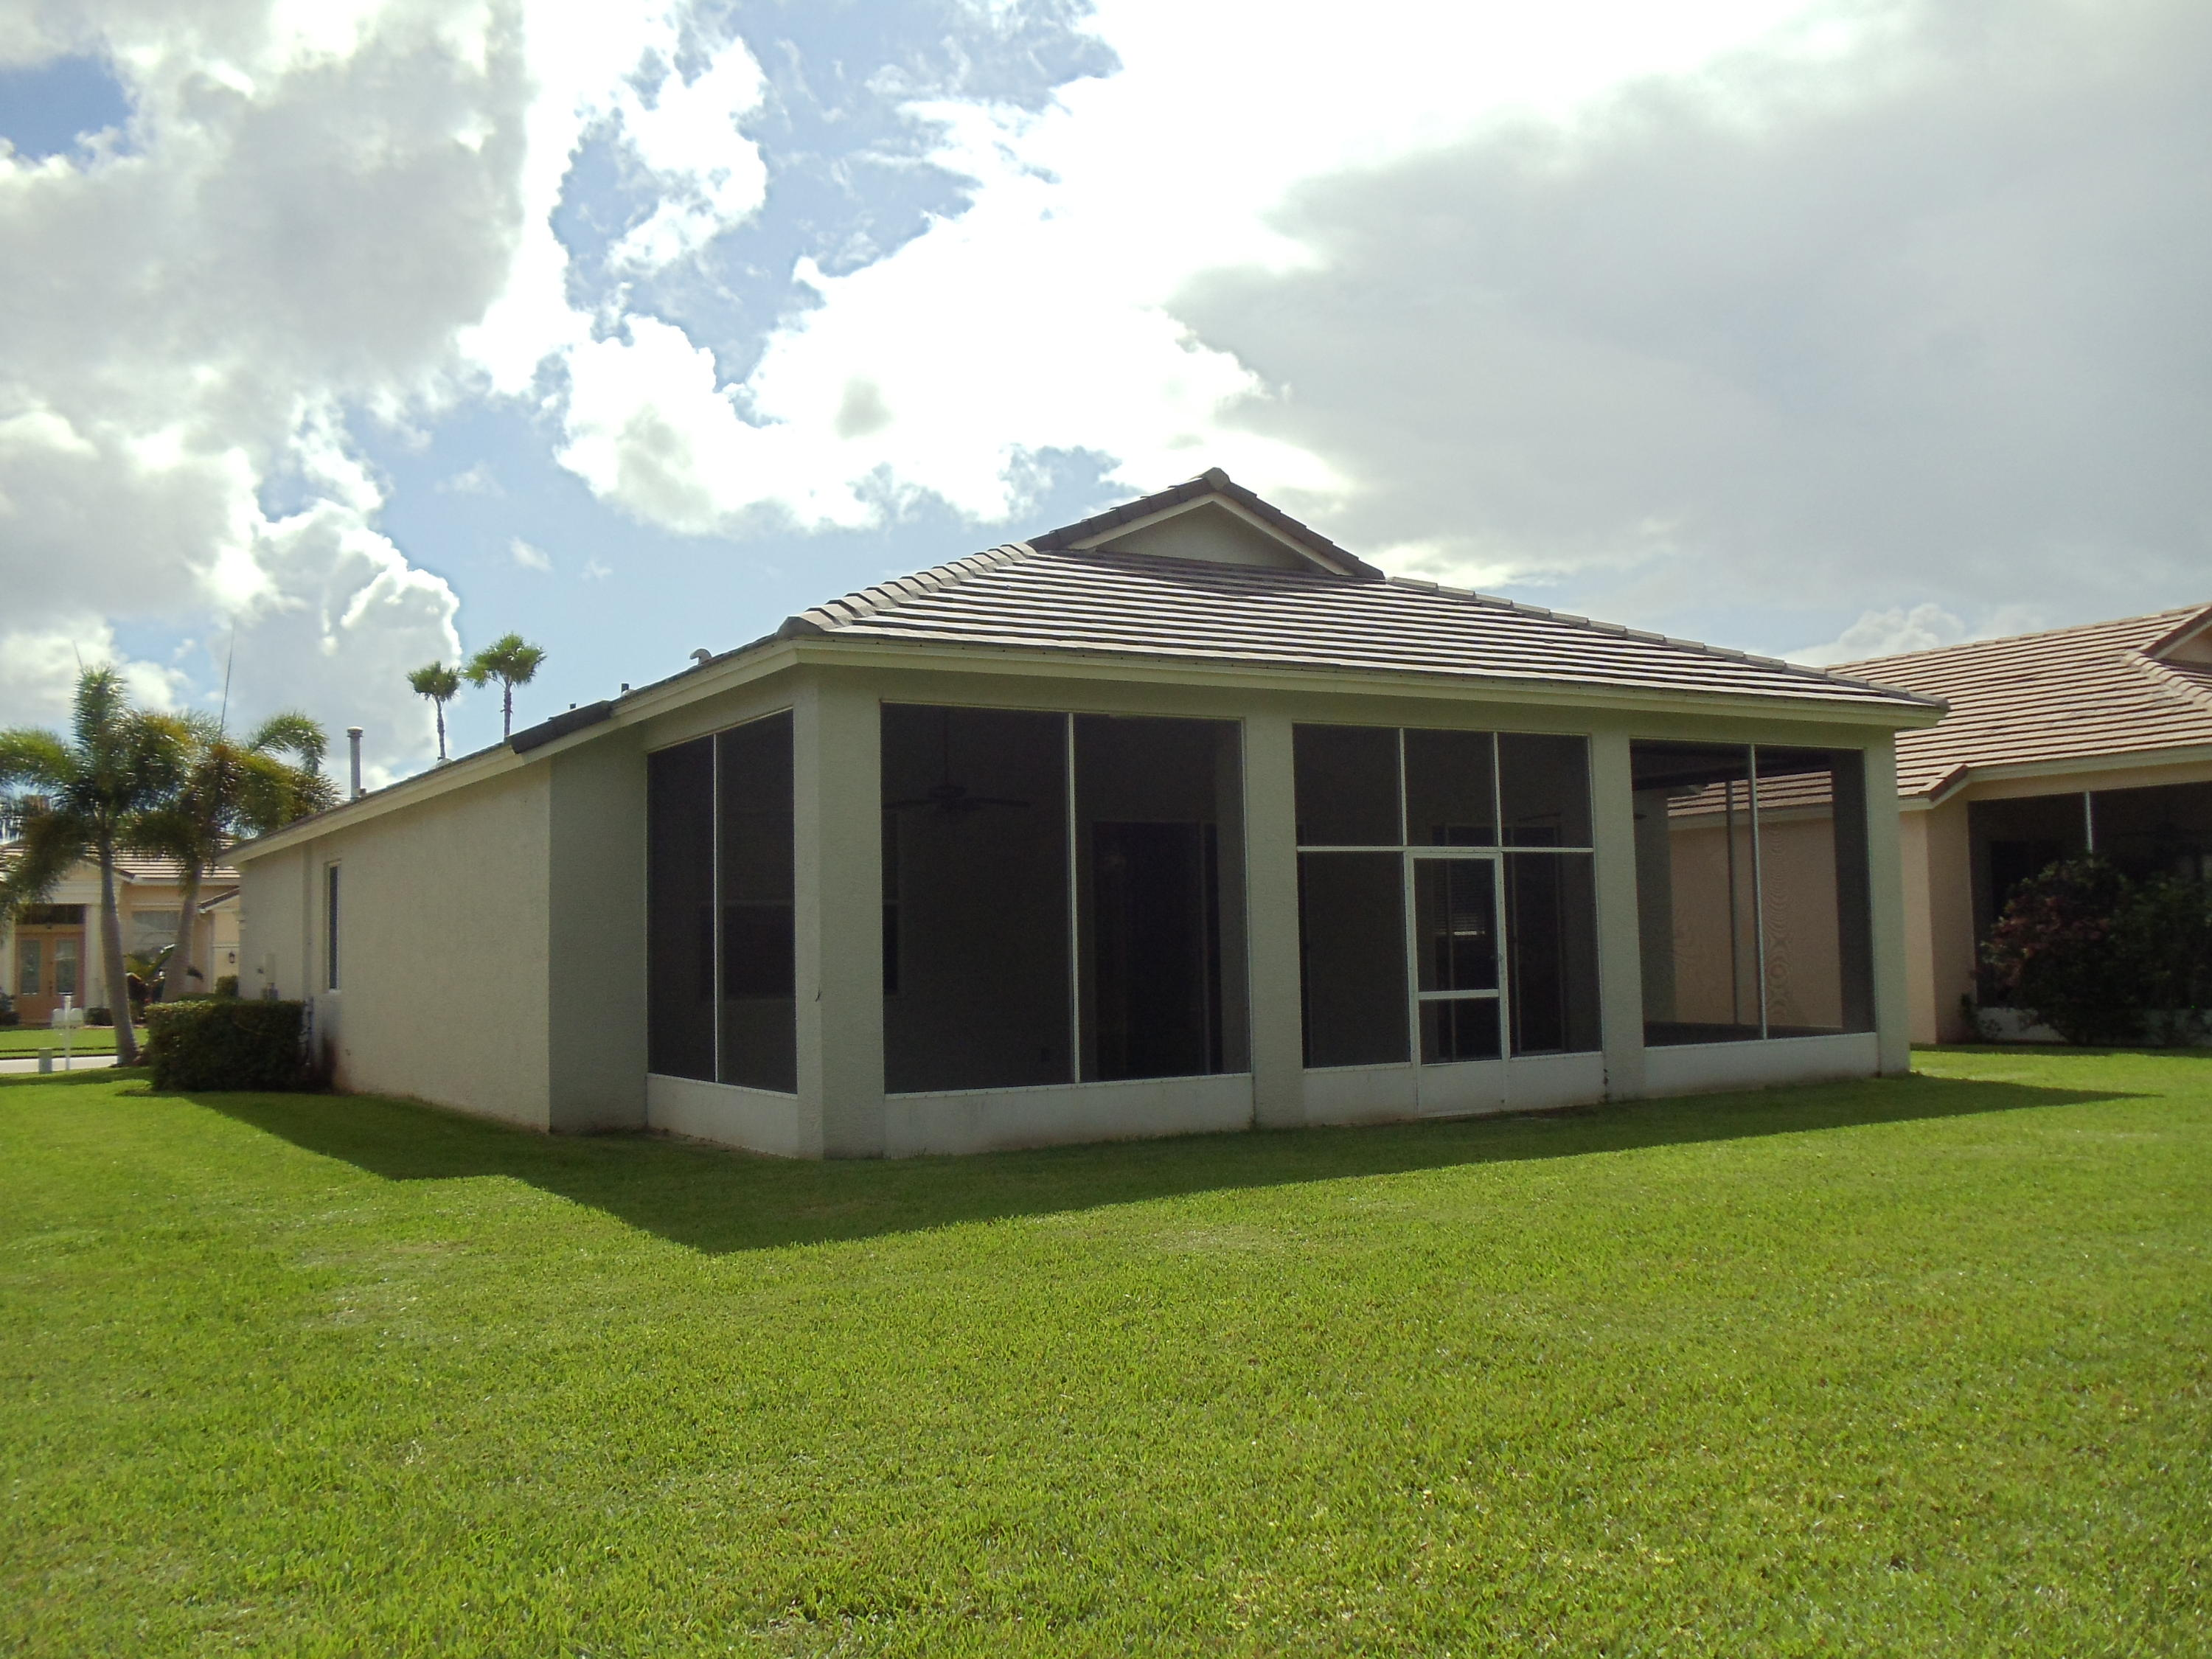 LAKEFOREST AT ST LUCIE WEST PHASE 1 REALTOR